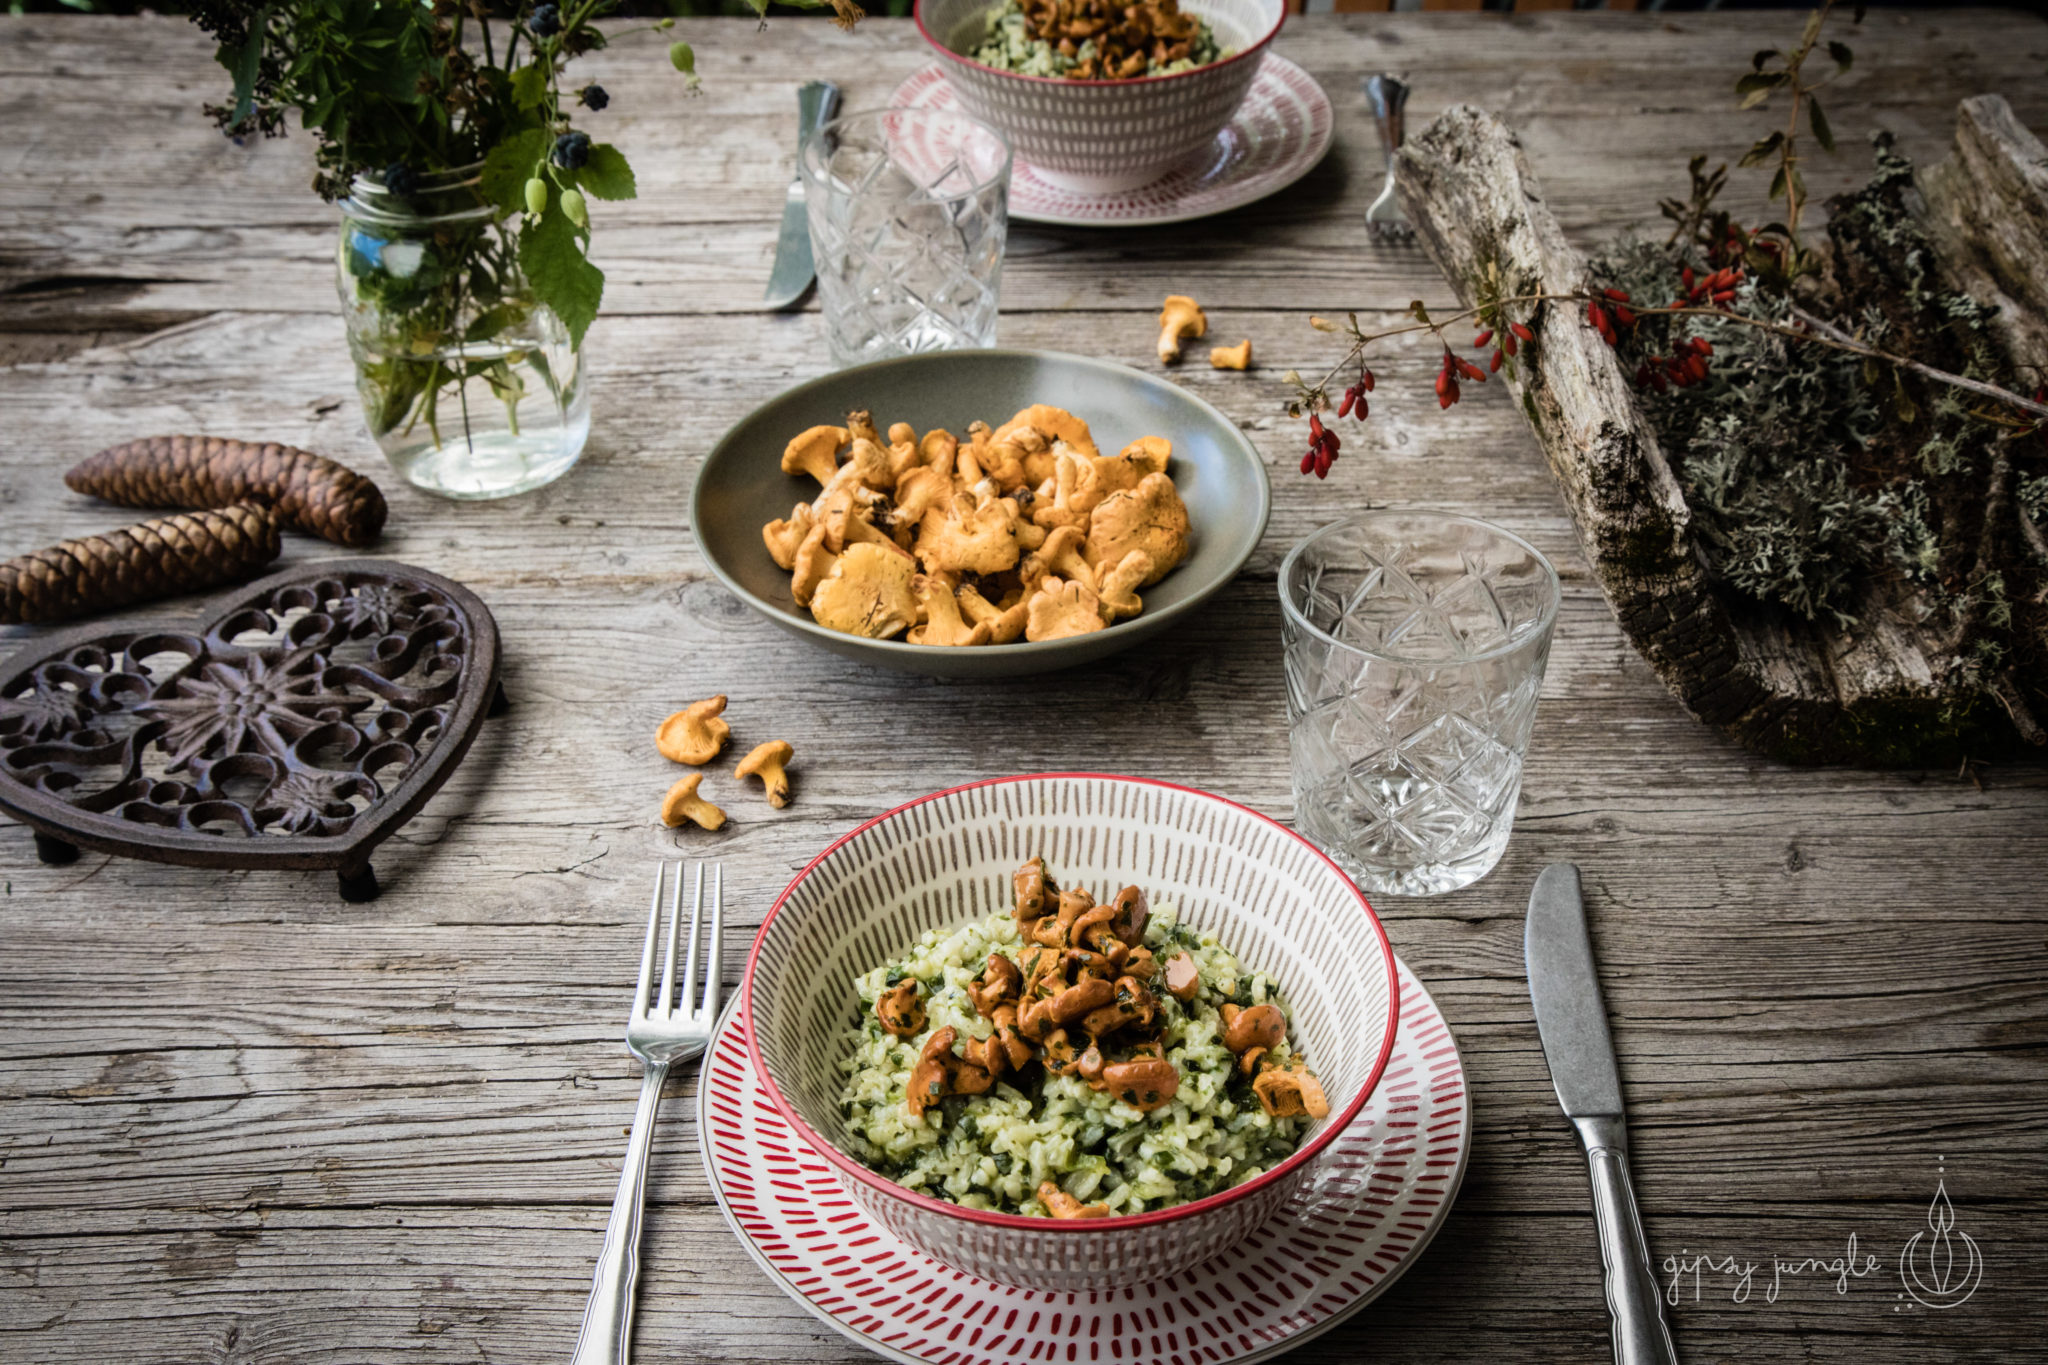 food styling - risotto ai funghi